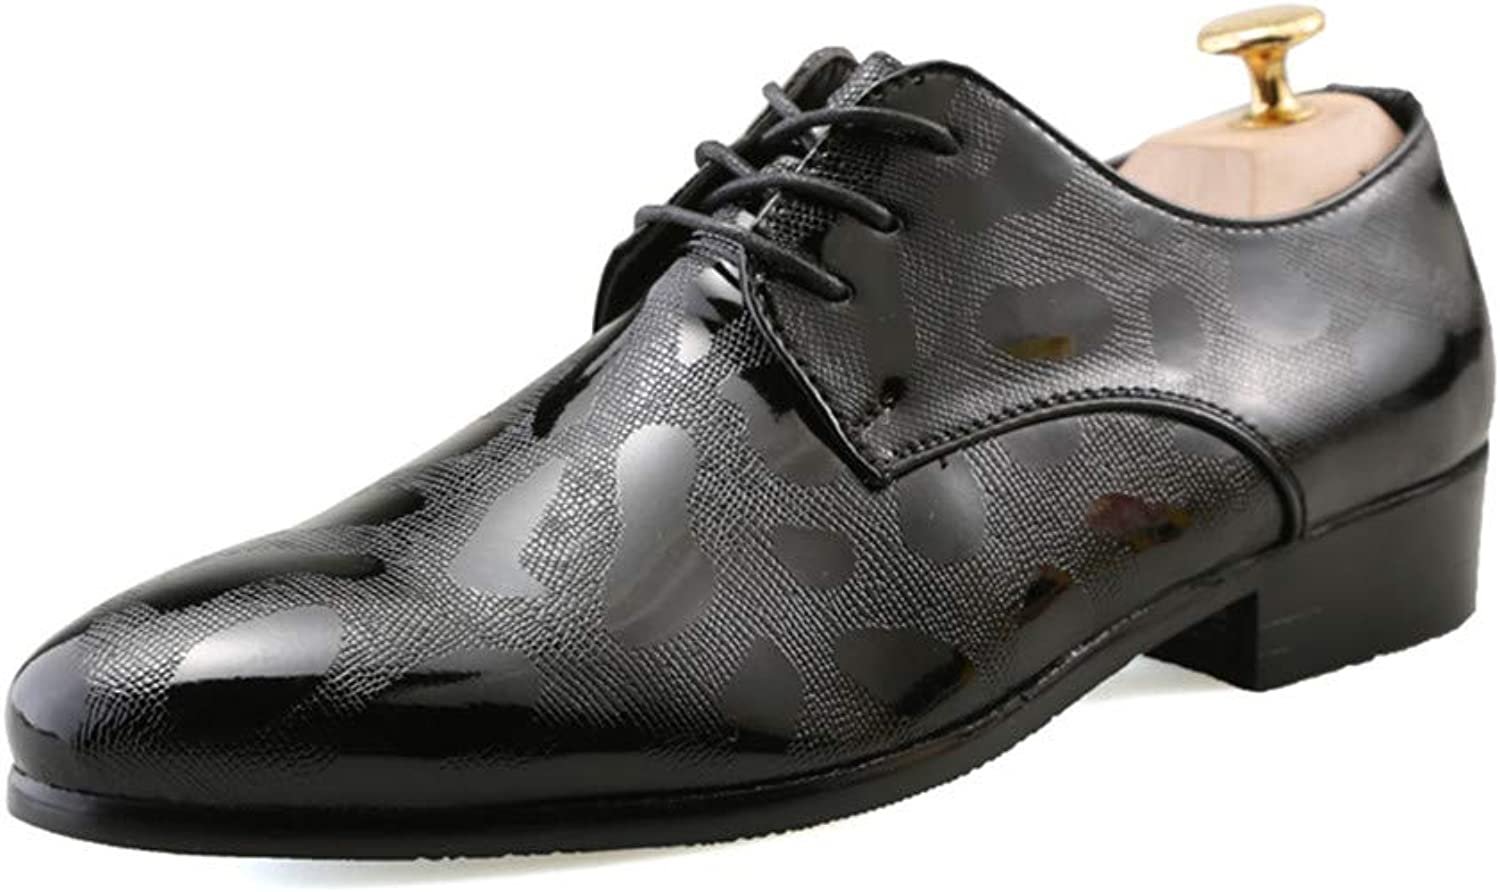 CHENDX shoes, Men's New Floral Embossed Business Oxford Casual British Style Formal shoes (color   Black, Size   7 UK)